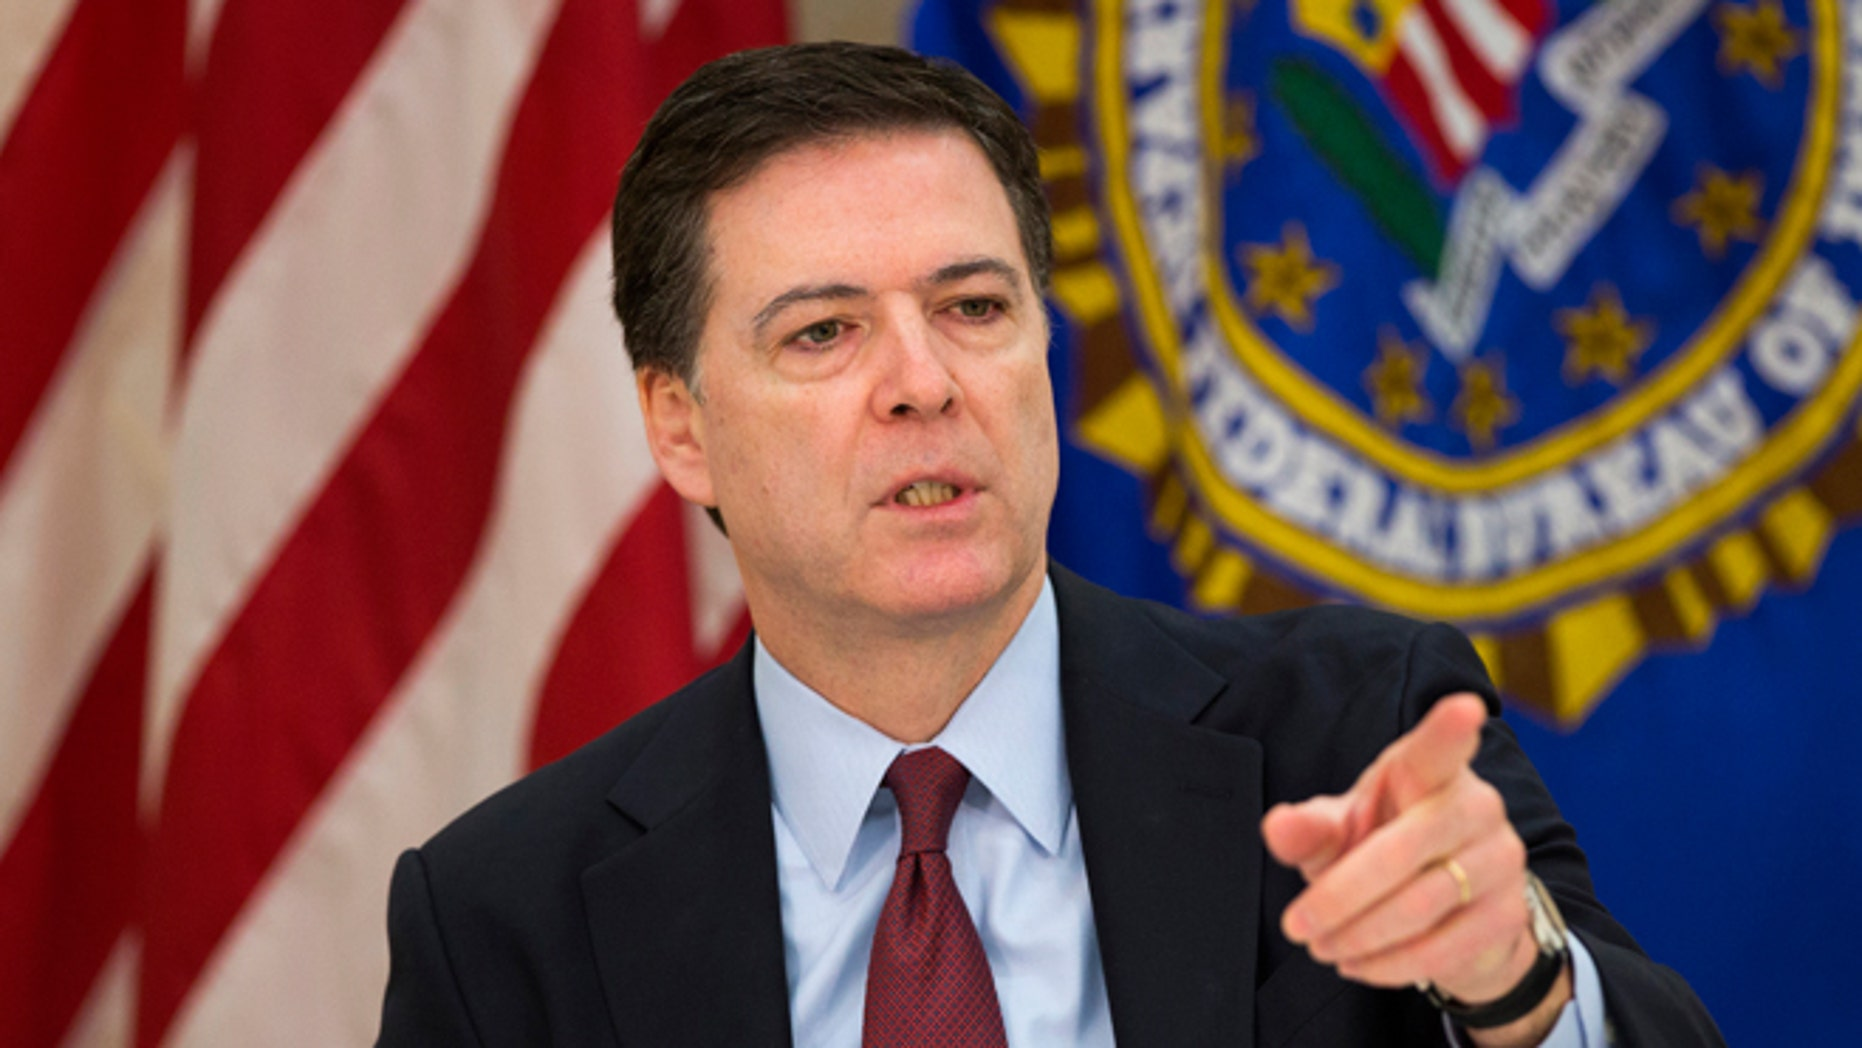 FILE - March 25, 2015: FBI director James Comey as he gestures during a news conference at FBI headquarters in Washington.